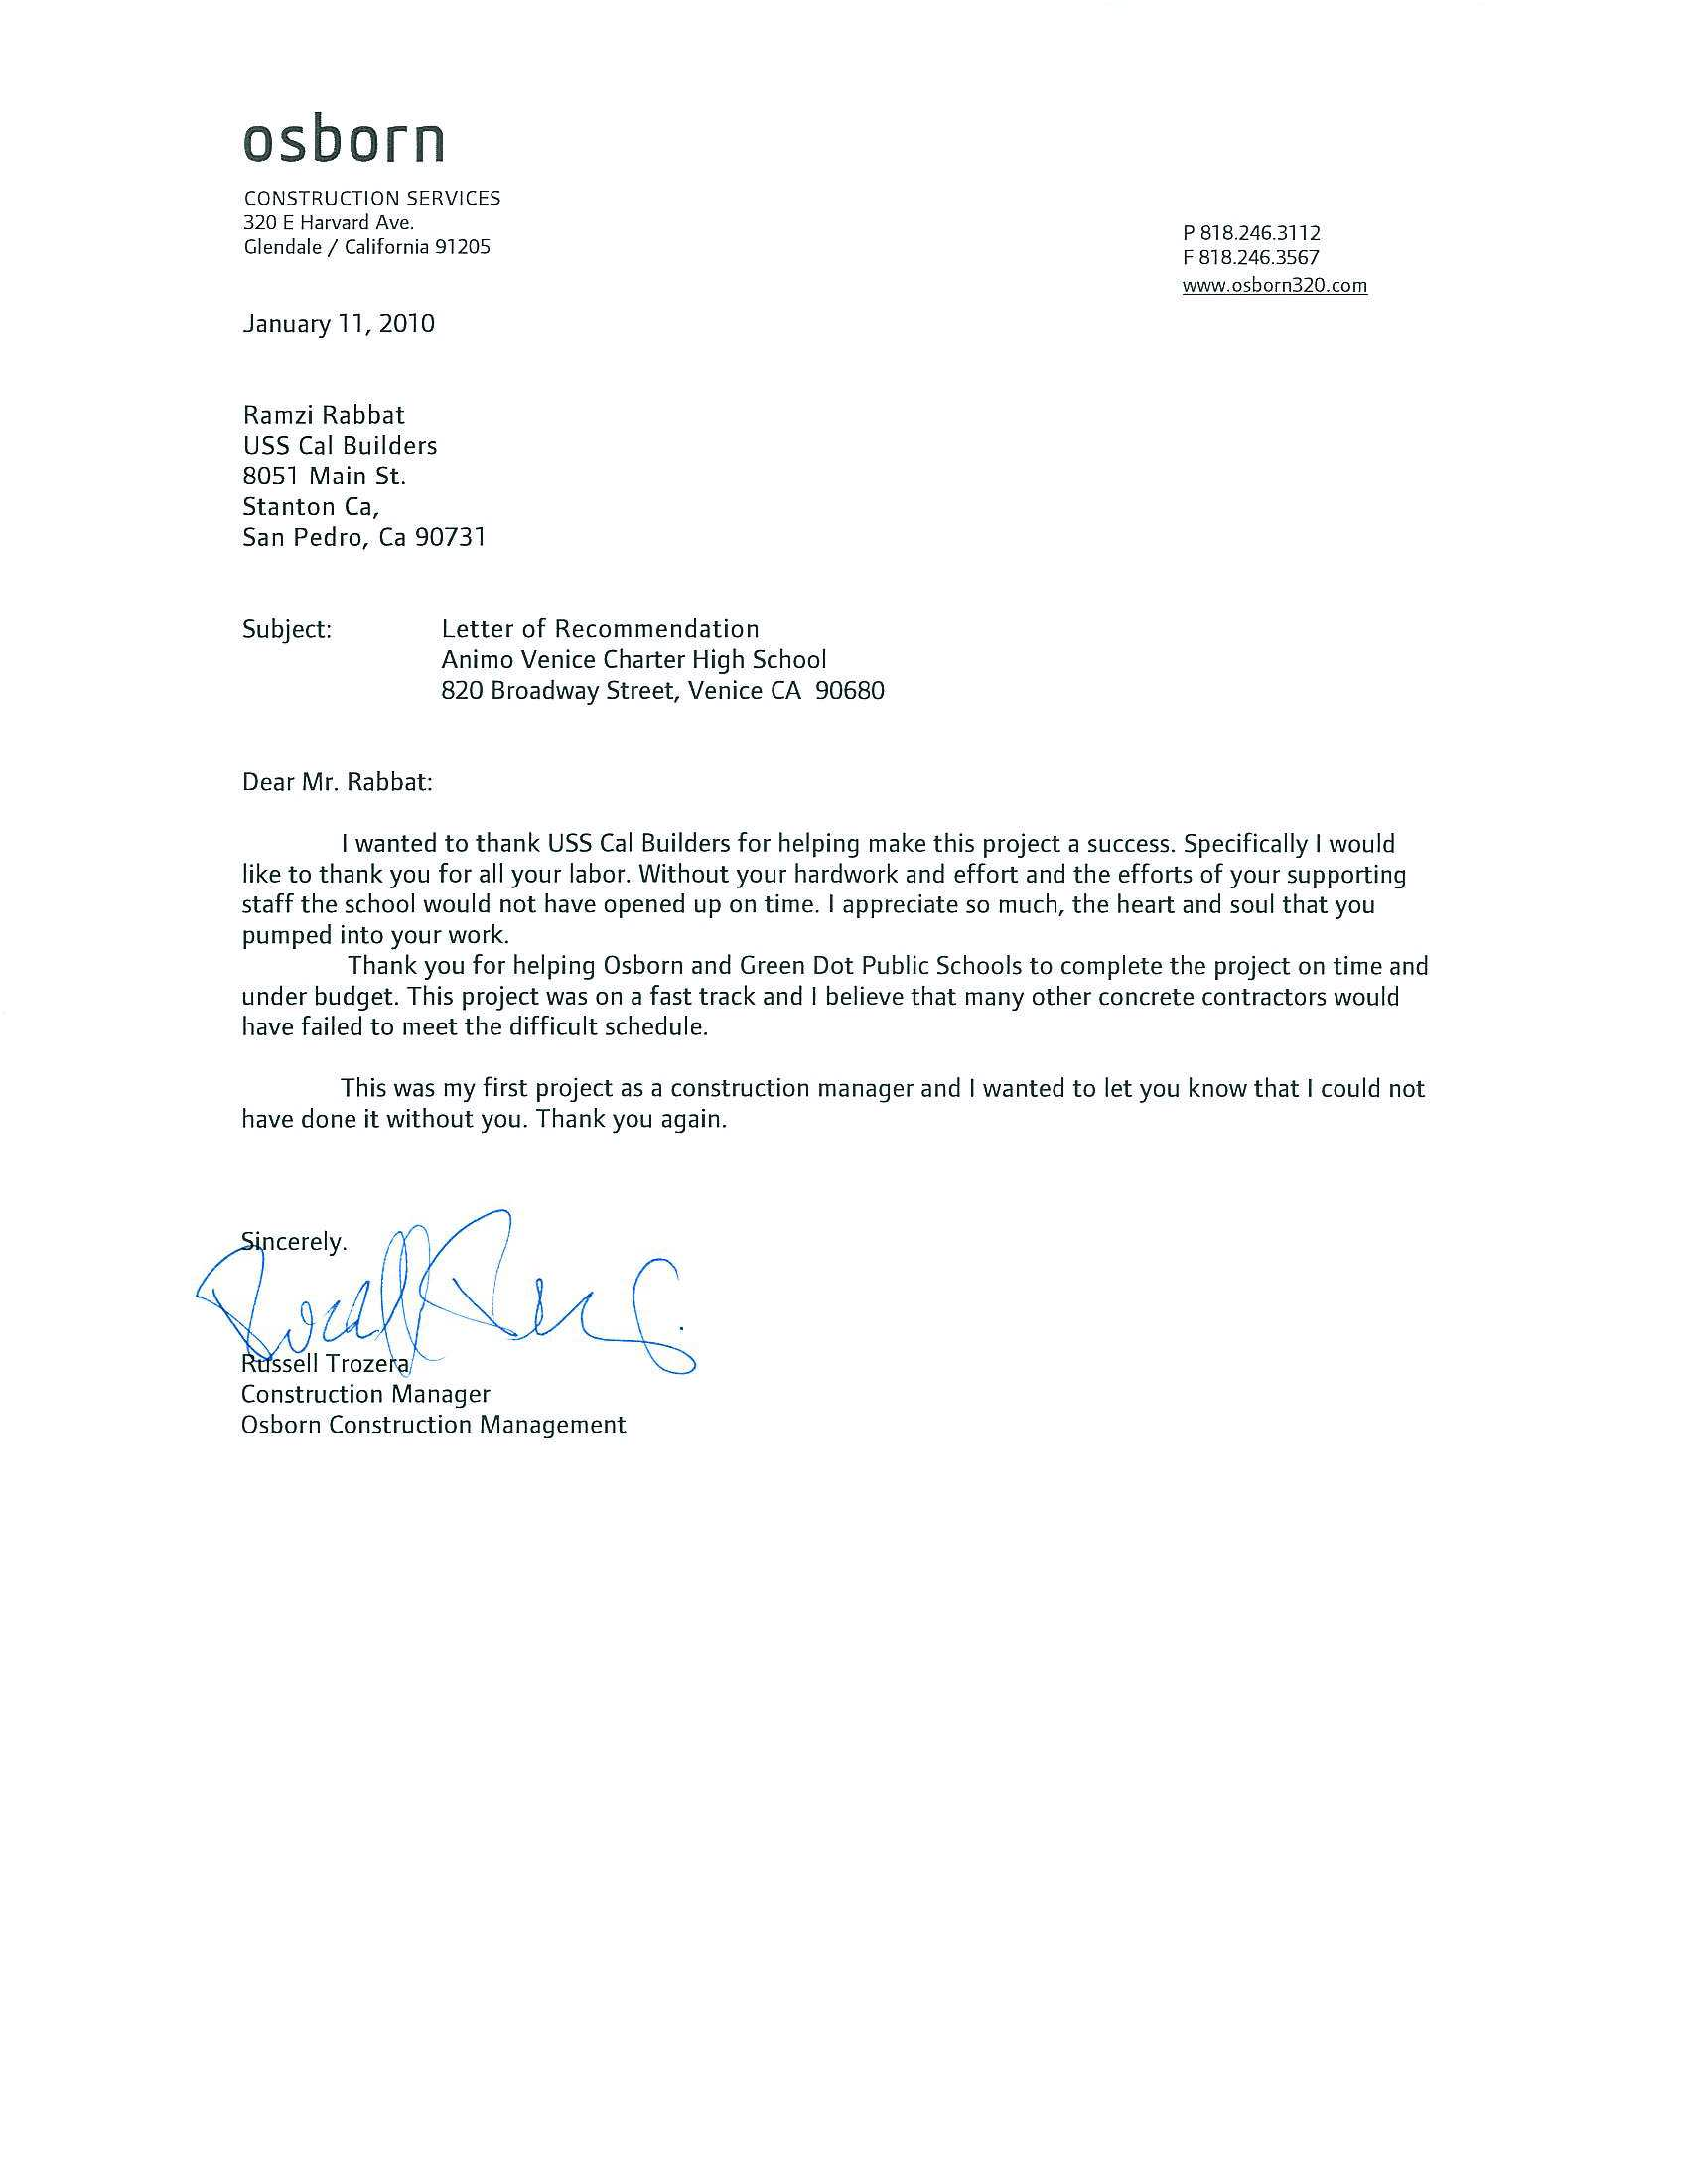 Reference Letter Sample – How to Format a Reference Letter